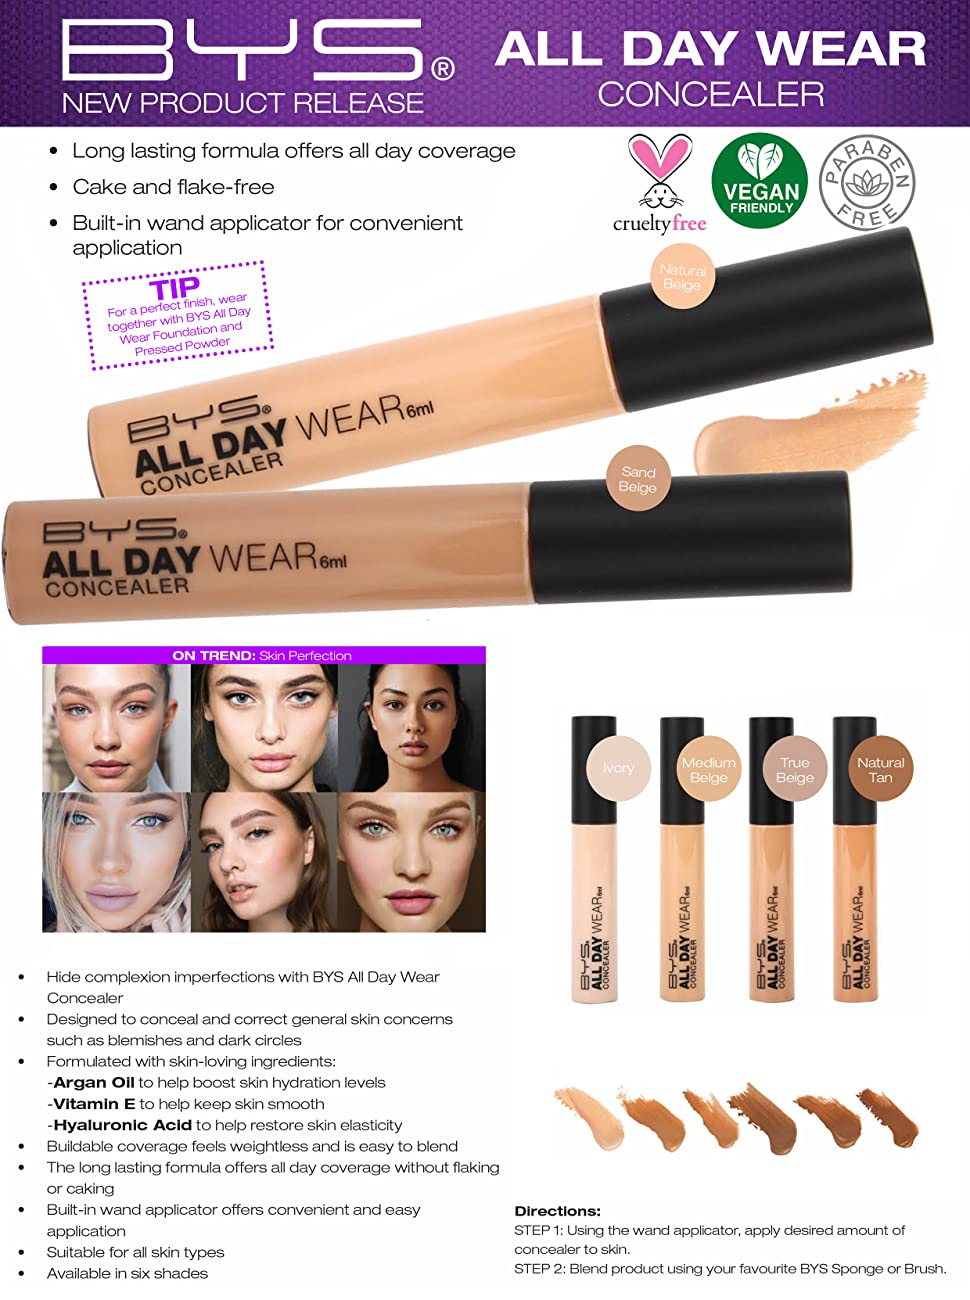 All Day Wear Concealer Built in Wand Beige imperfections  correct blemishes dark Argan hydration